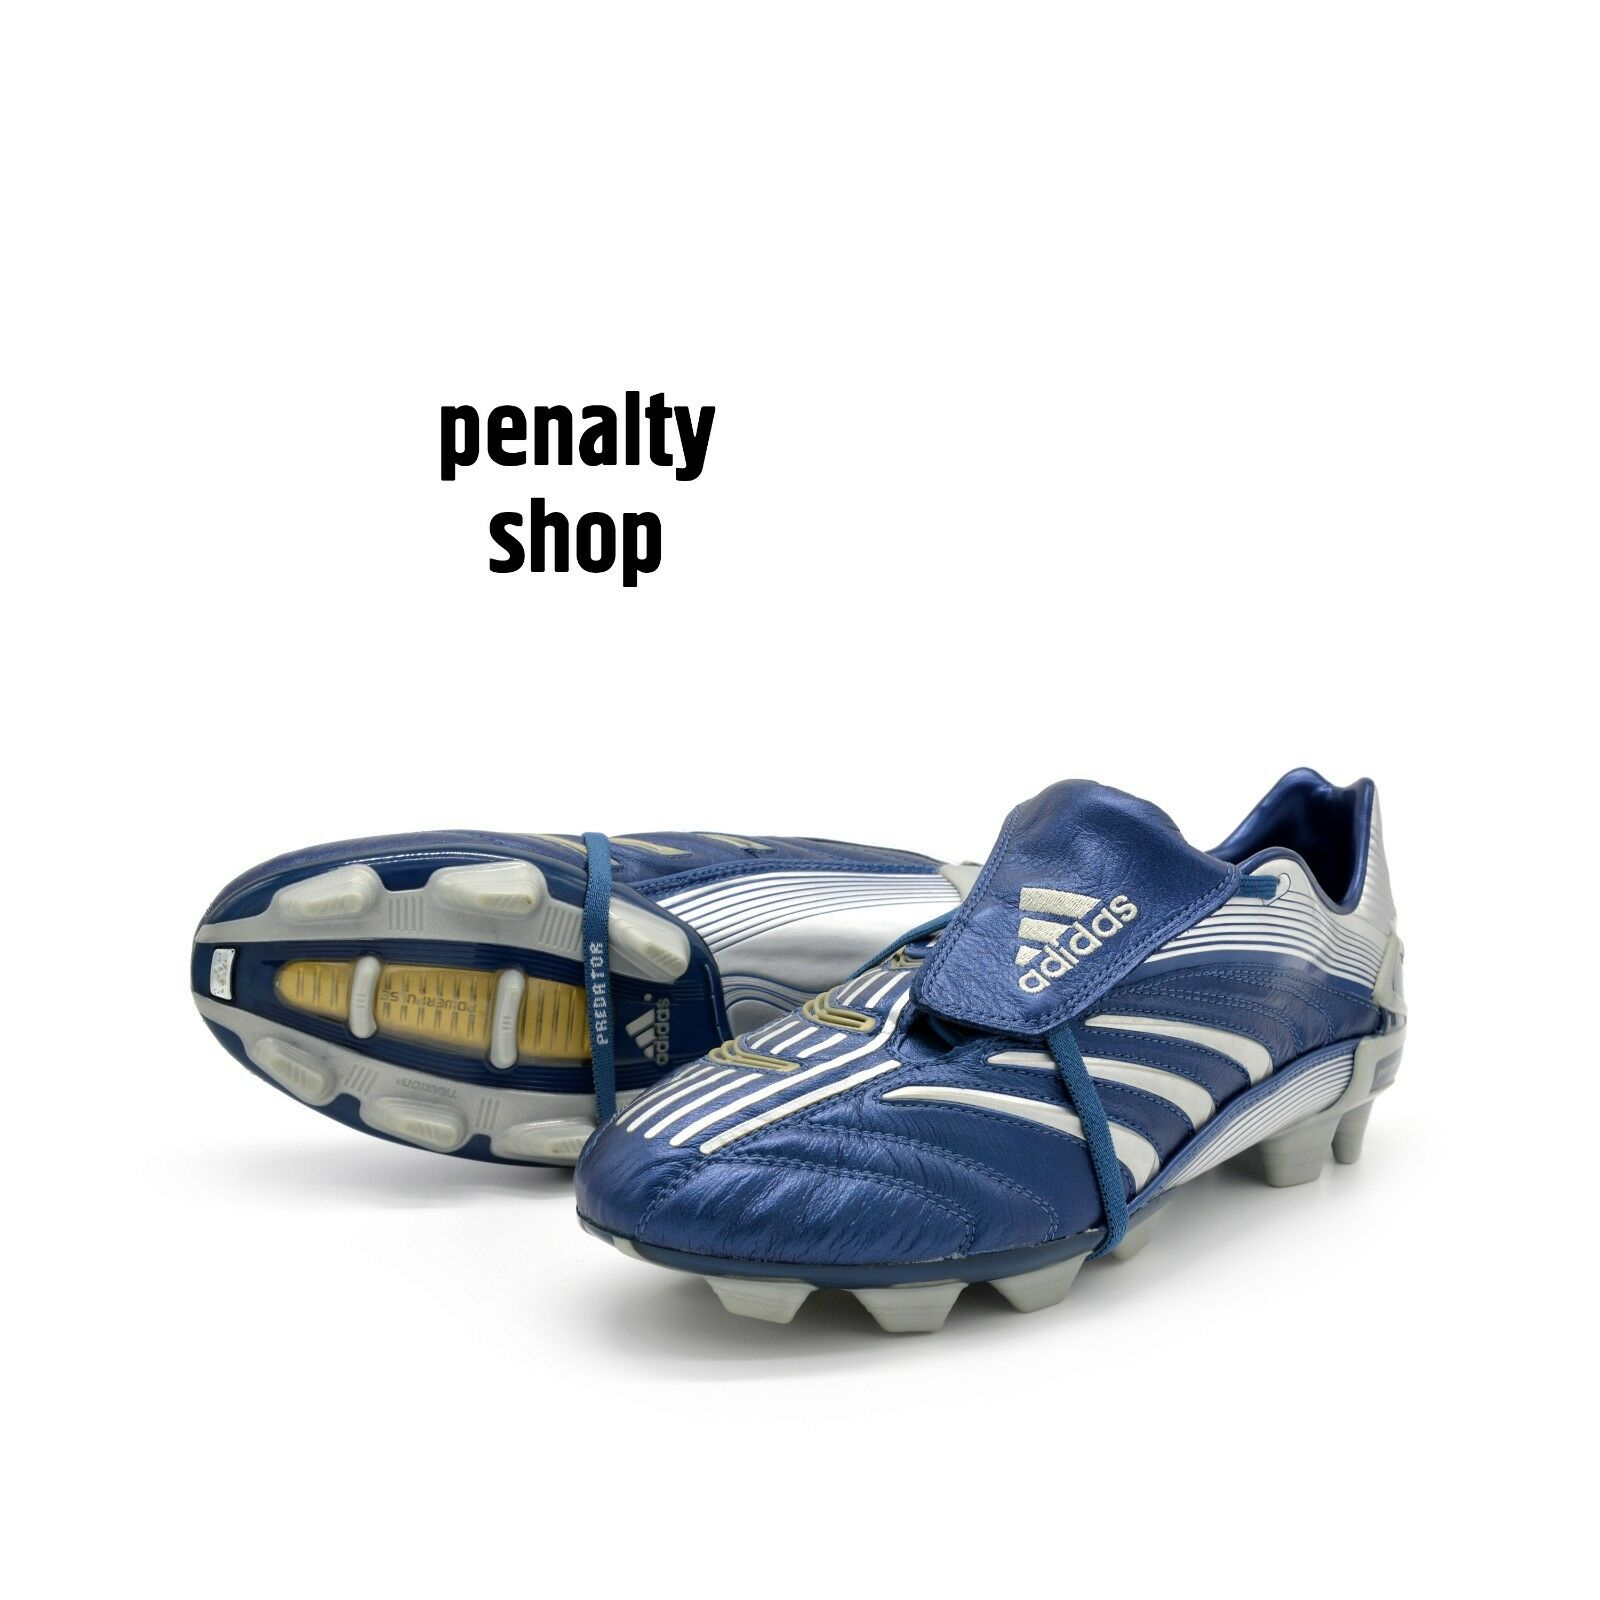 Adidas Prossoator Absolute TRX FG 661217 Frank Lampard RARE Limited Edition